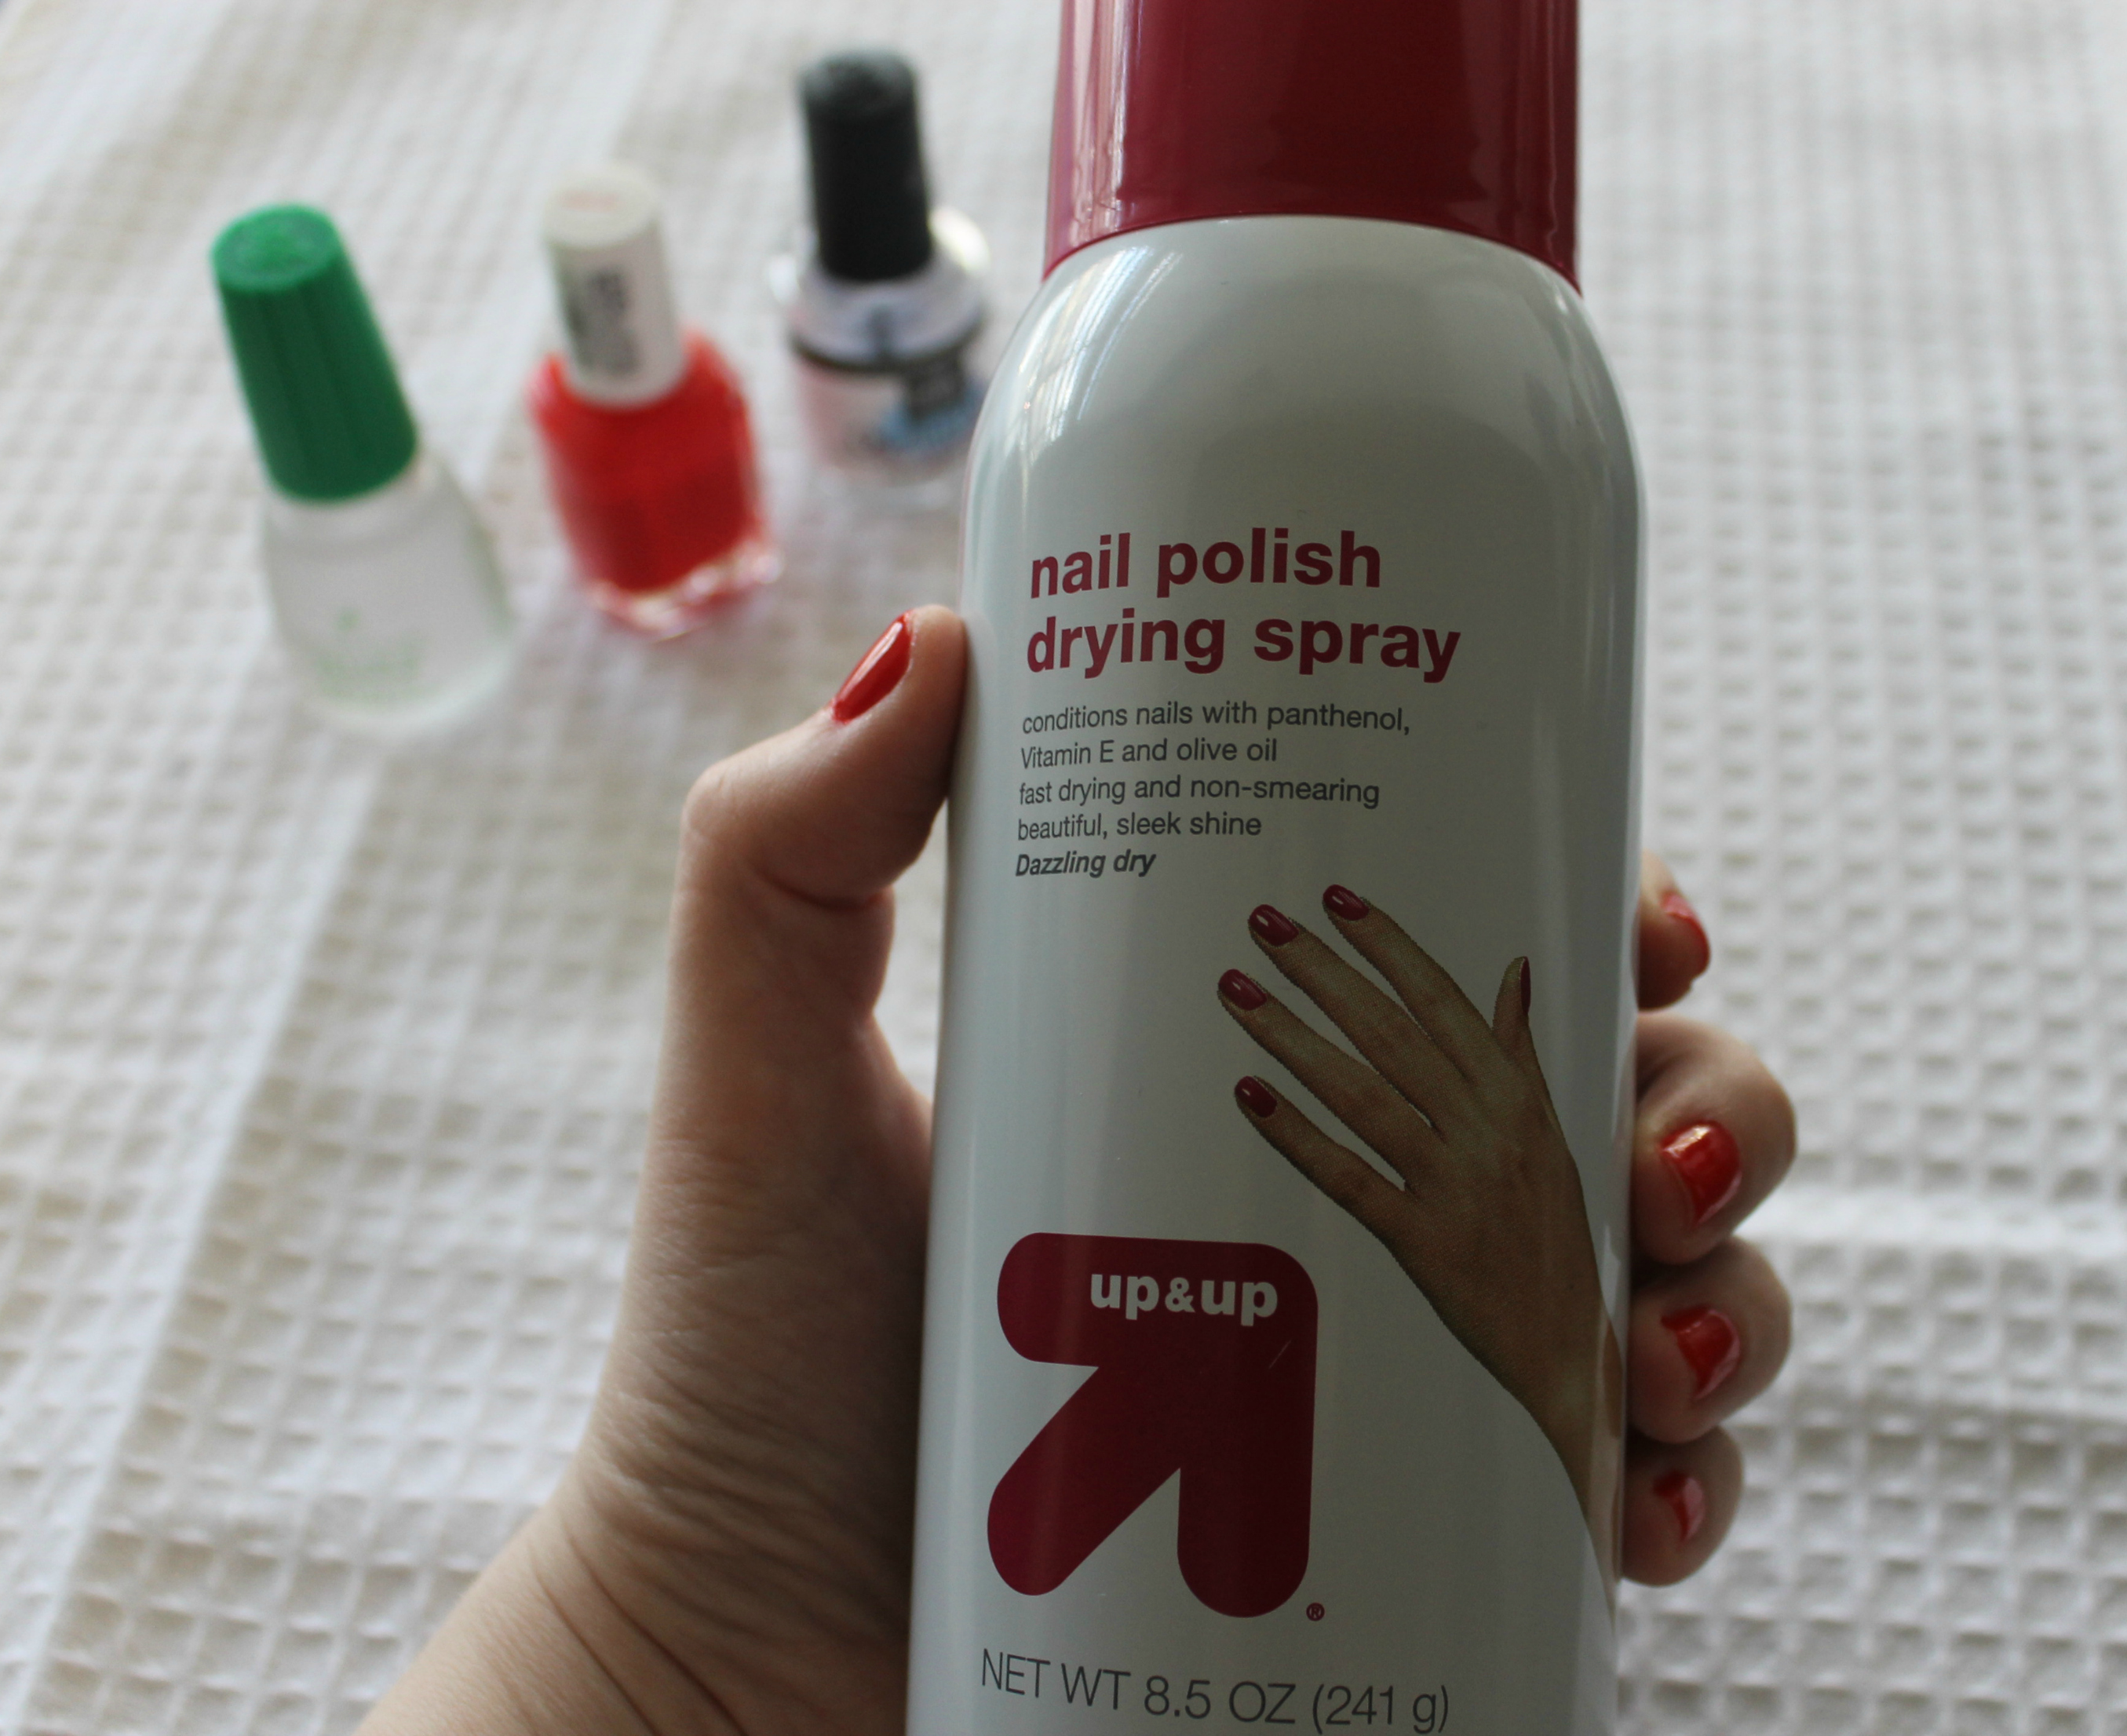 Quick-dry polish uses the same technology and ingredients that are used in regular polish, the only difference is the ratio of ingredients. Quick-dry polishes use higher levels of solvents (remember that solvents evaporate quickly) - more solvent means that the .